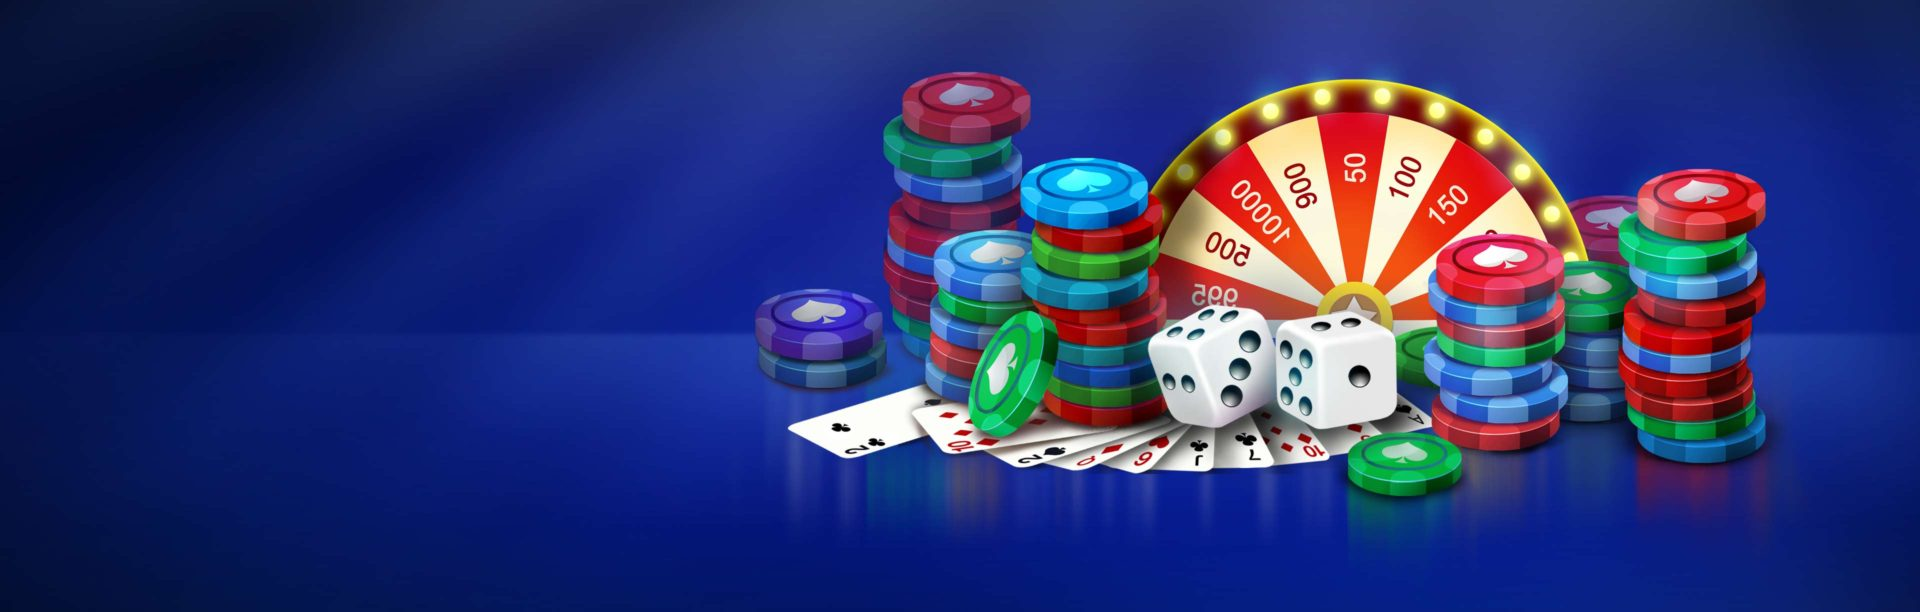 spotlight  35 oR - How to have a perfect play with online casino games?